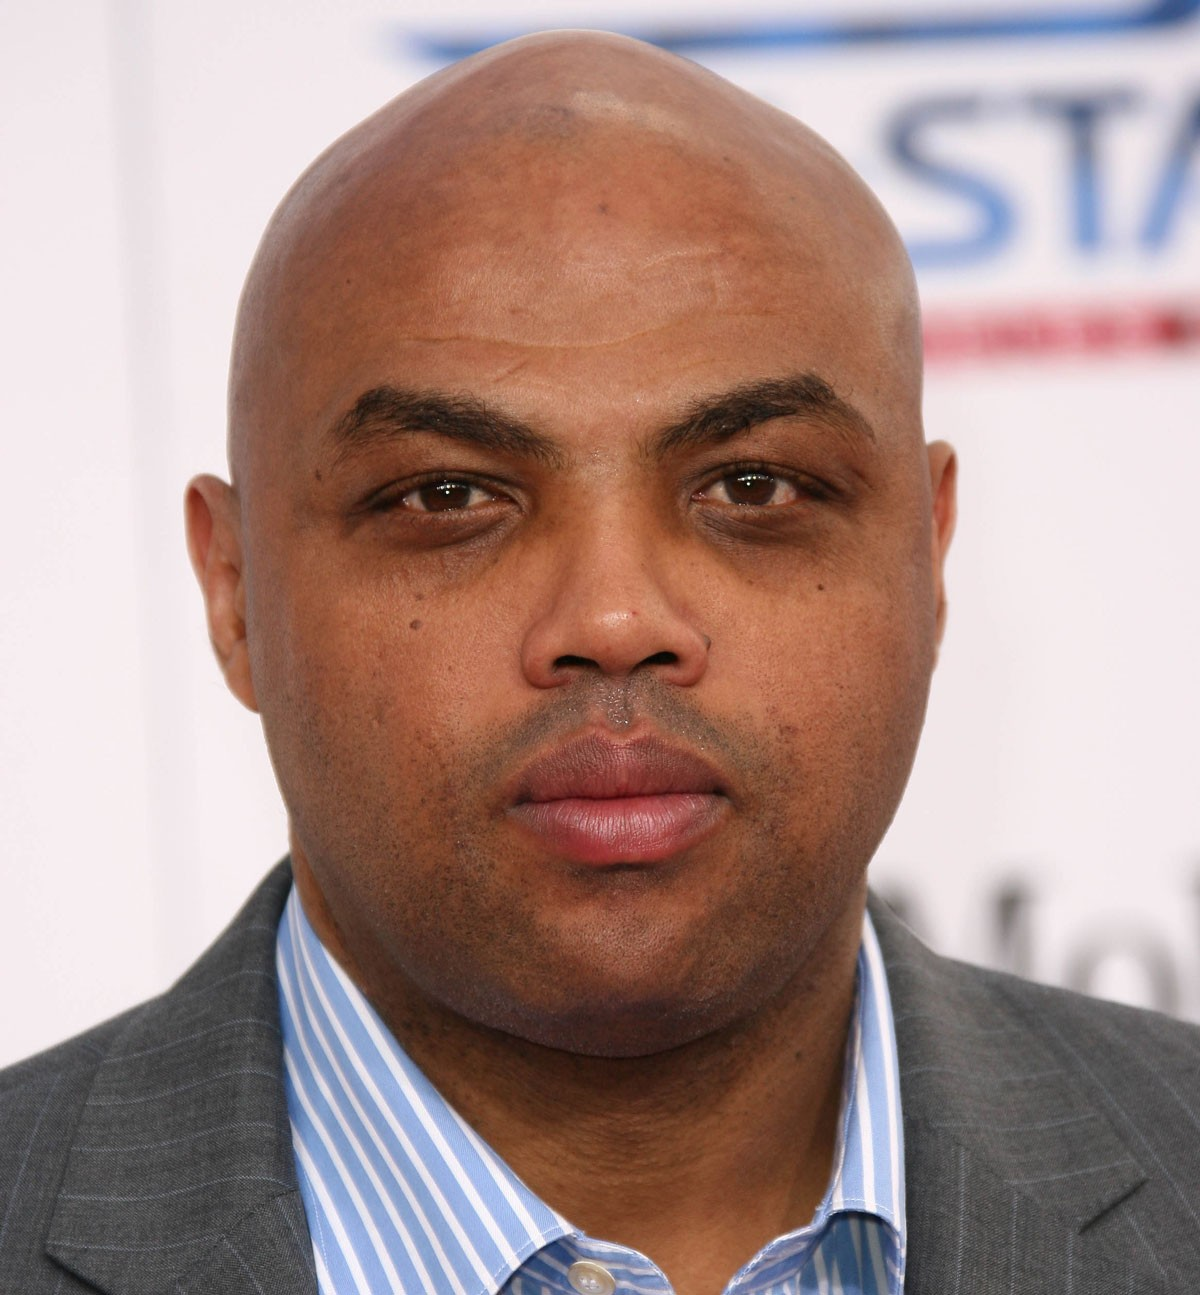 Charles Barkley: A Thoughtful Kid